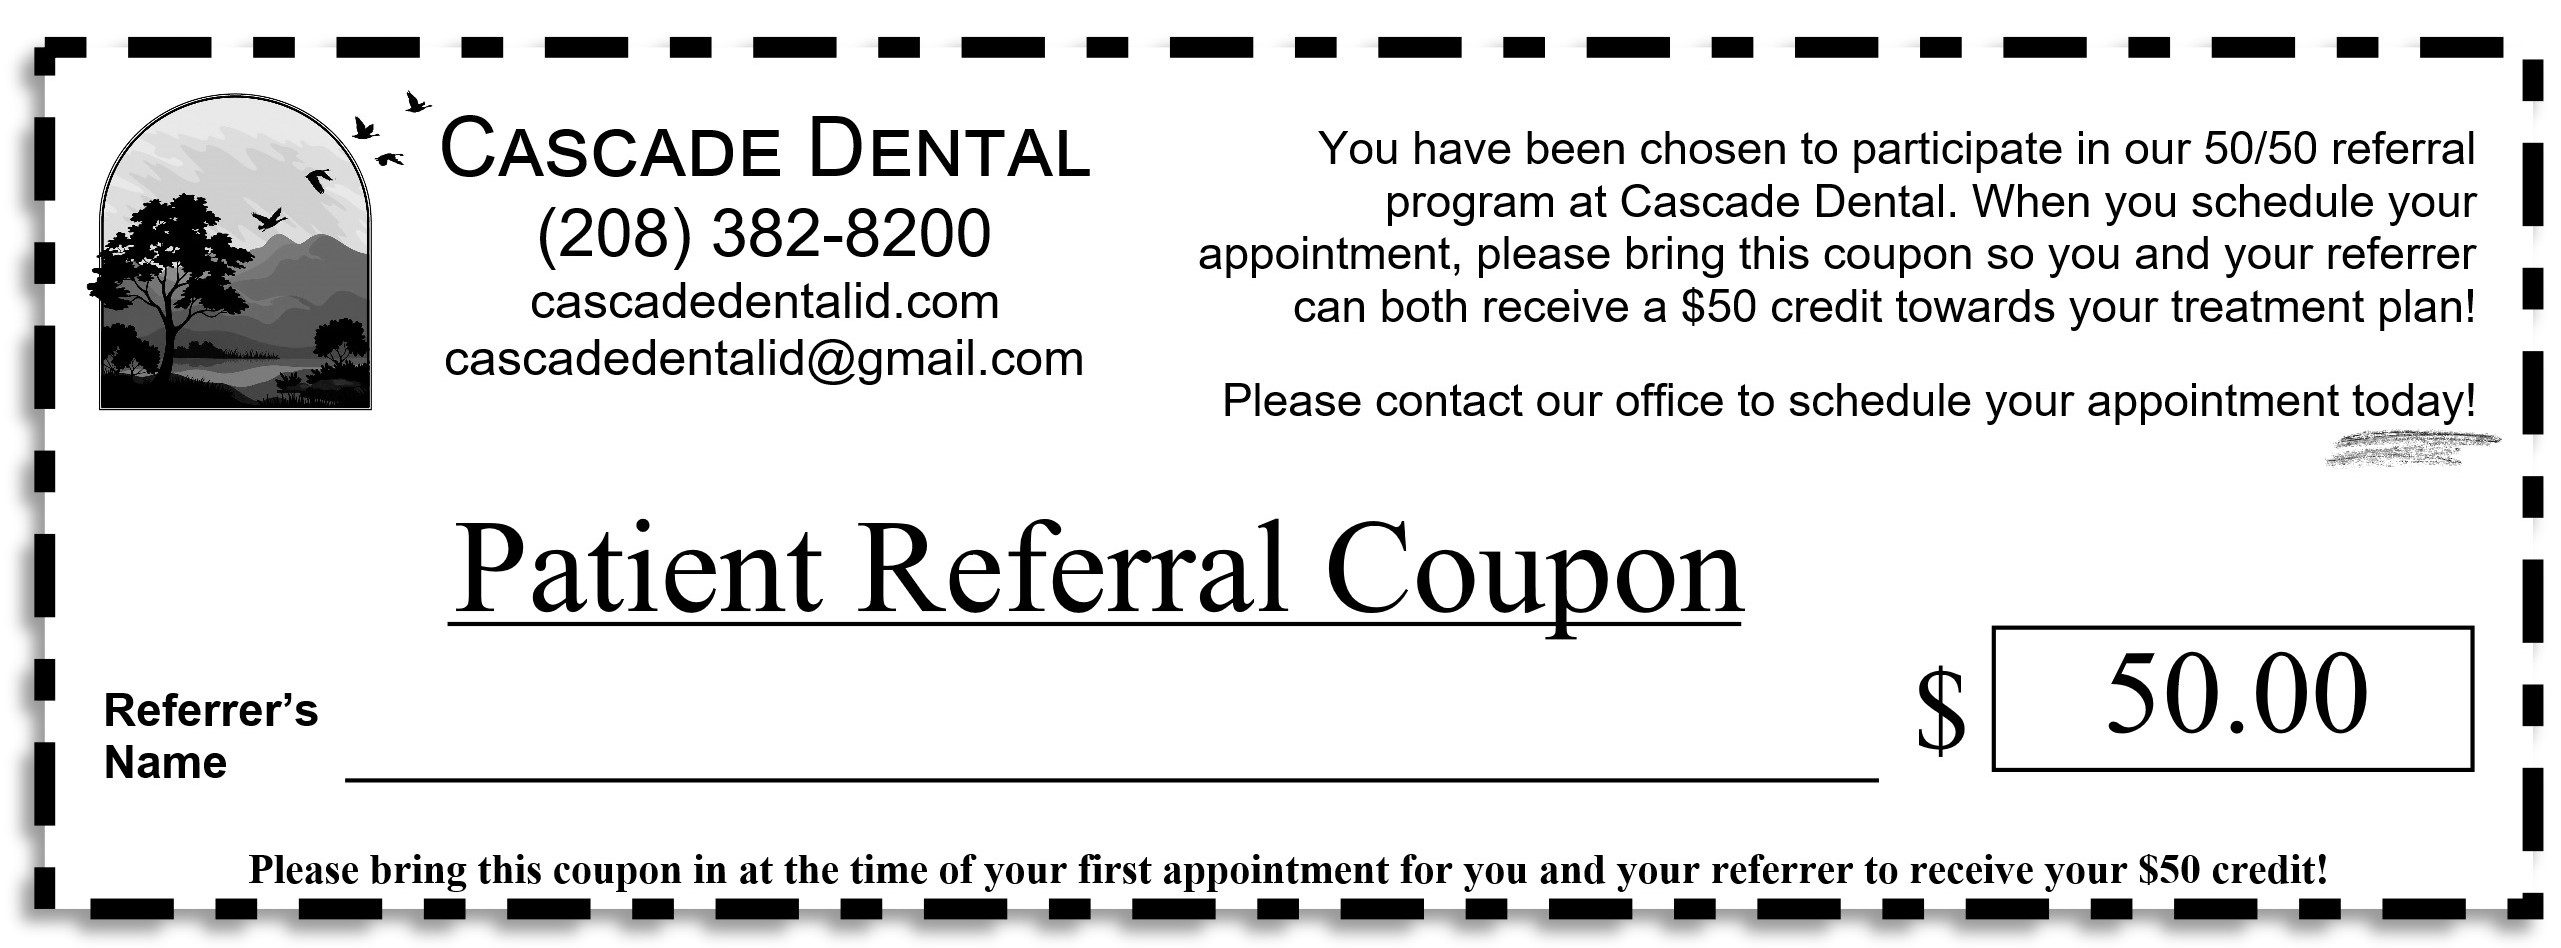 CD Referral Coupon cropped.jpg